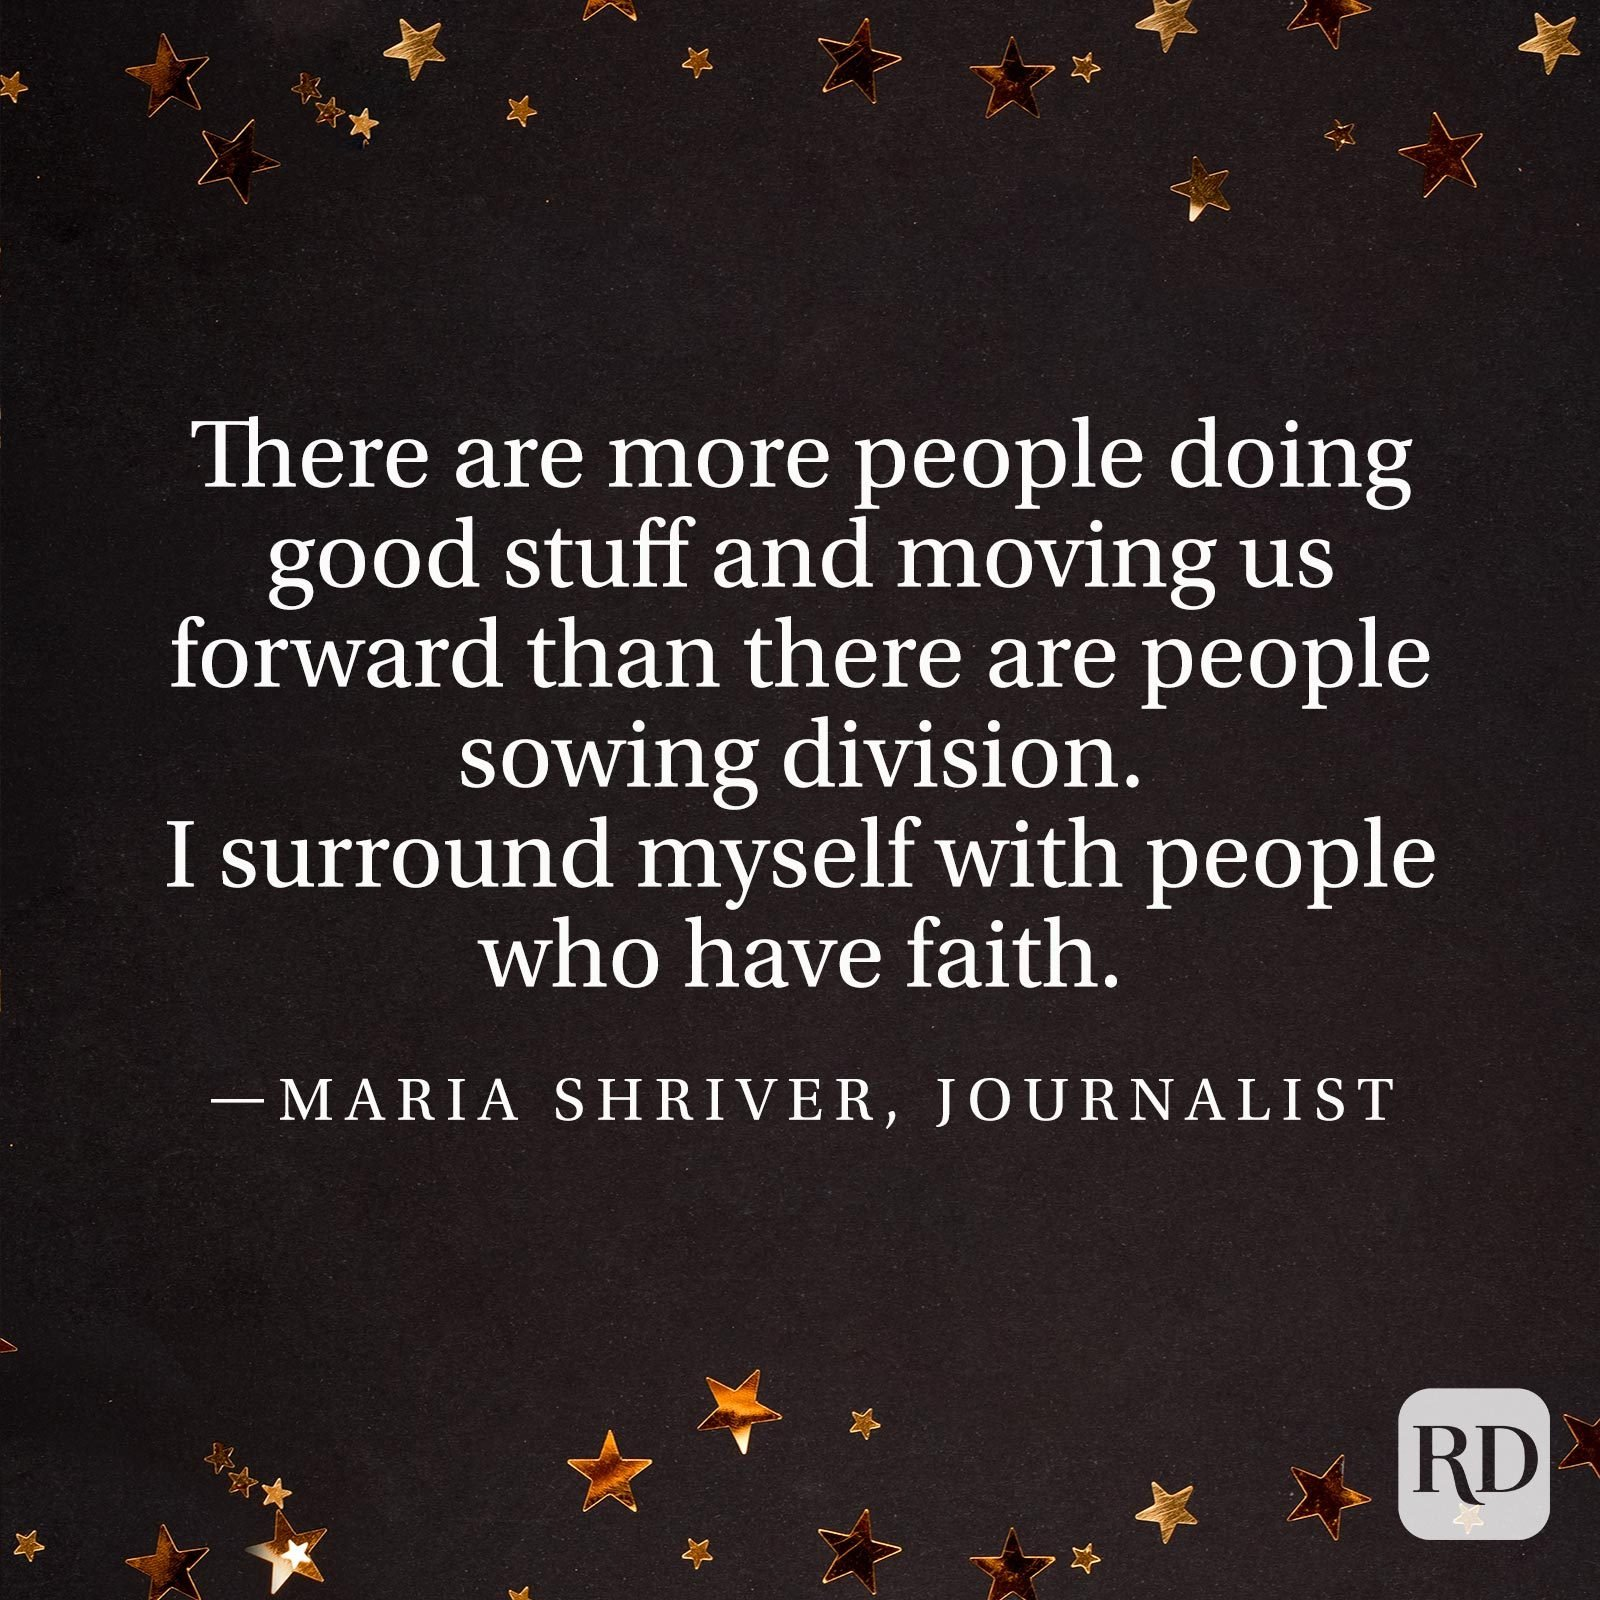 """There are more people doing good stuff and moving us forward than there are people sowing division. I surround myself with people who have faith."" —Maria Shriver, journalist"